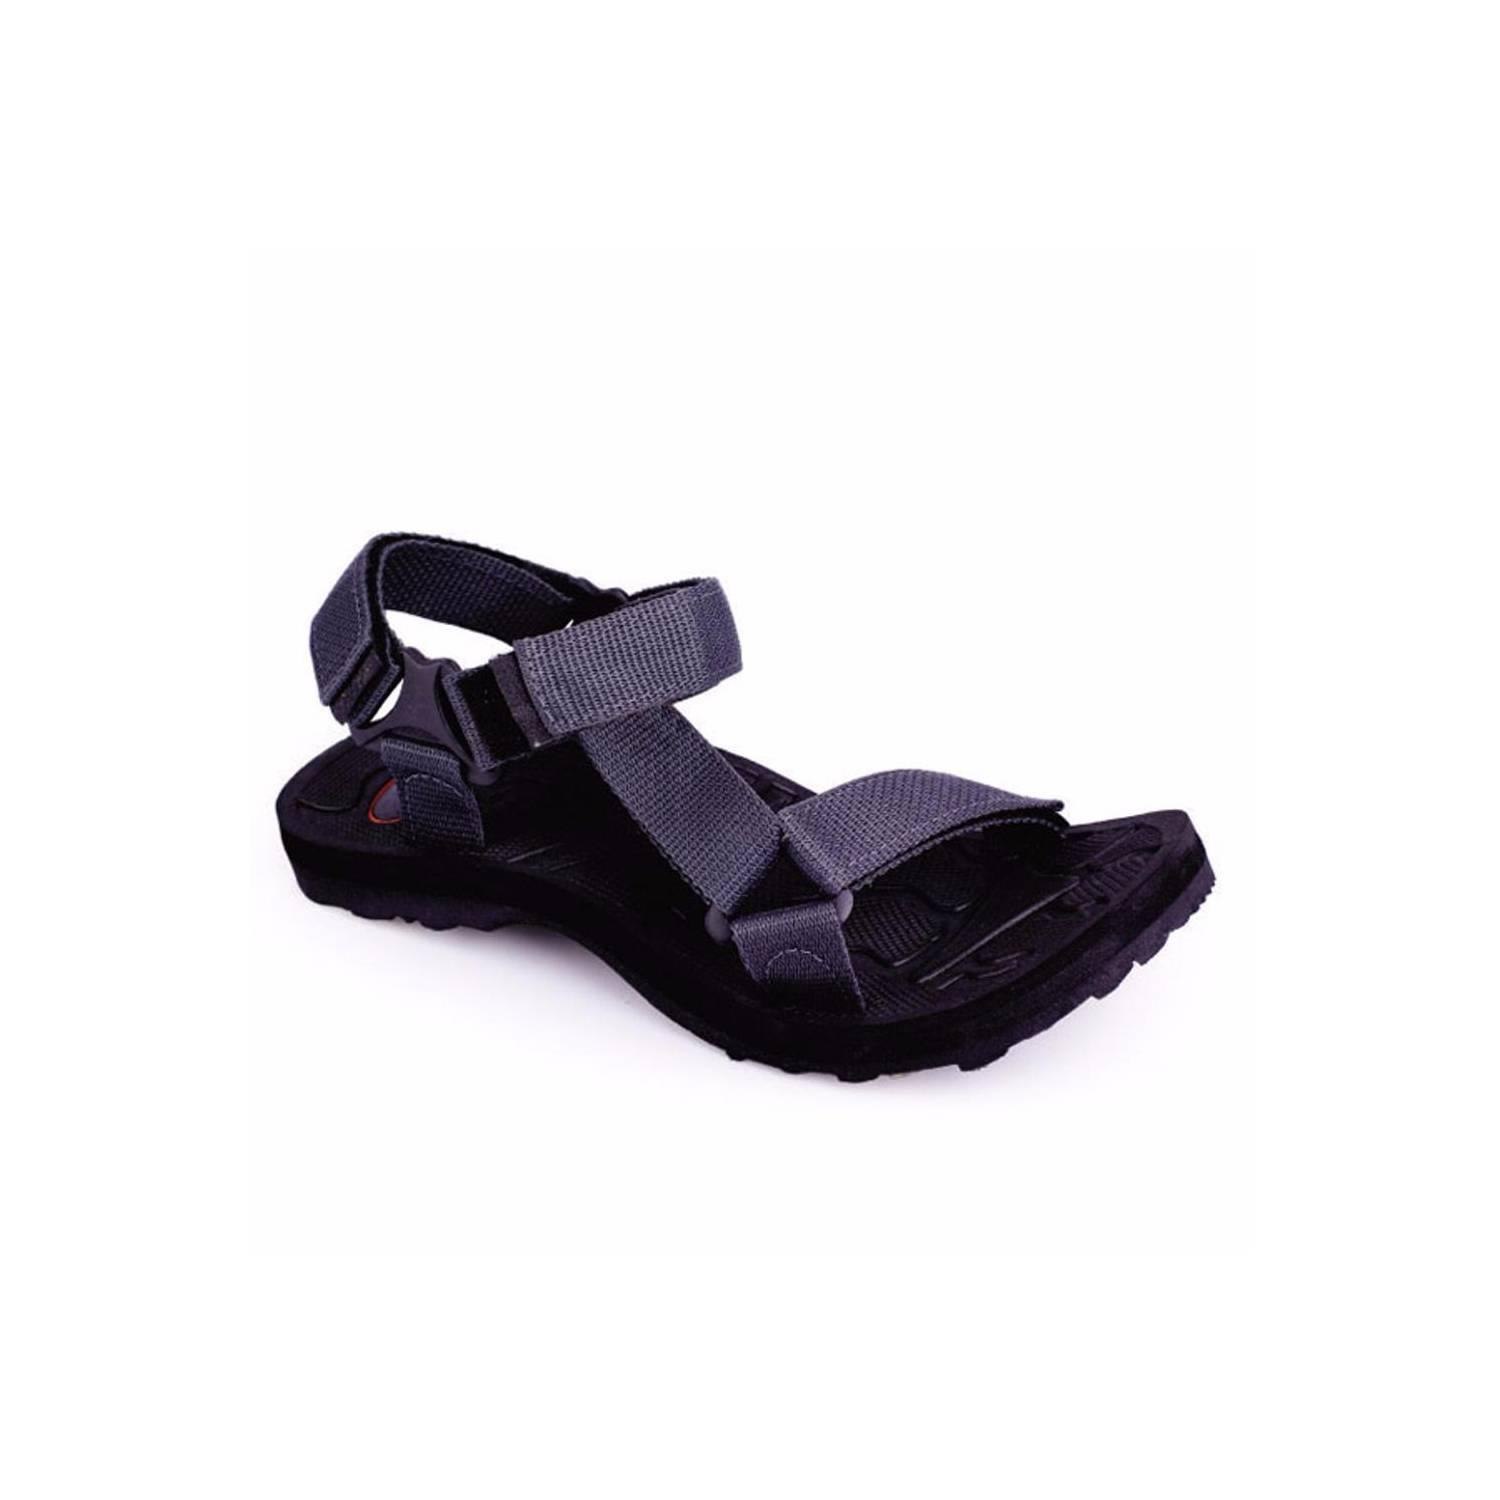 LIMITED EDITION STOK TERBARU EIGER SANDAL GUNUNG HOT PRODUCT